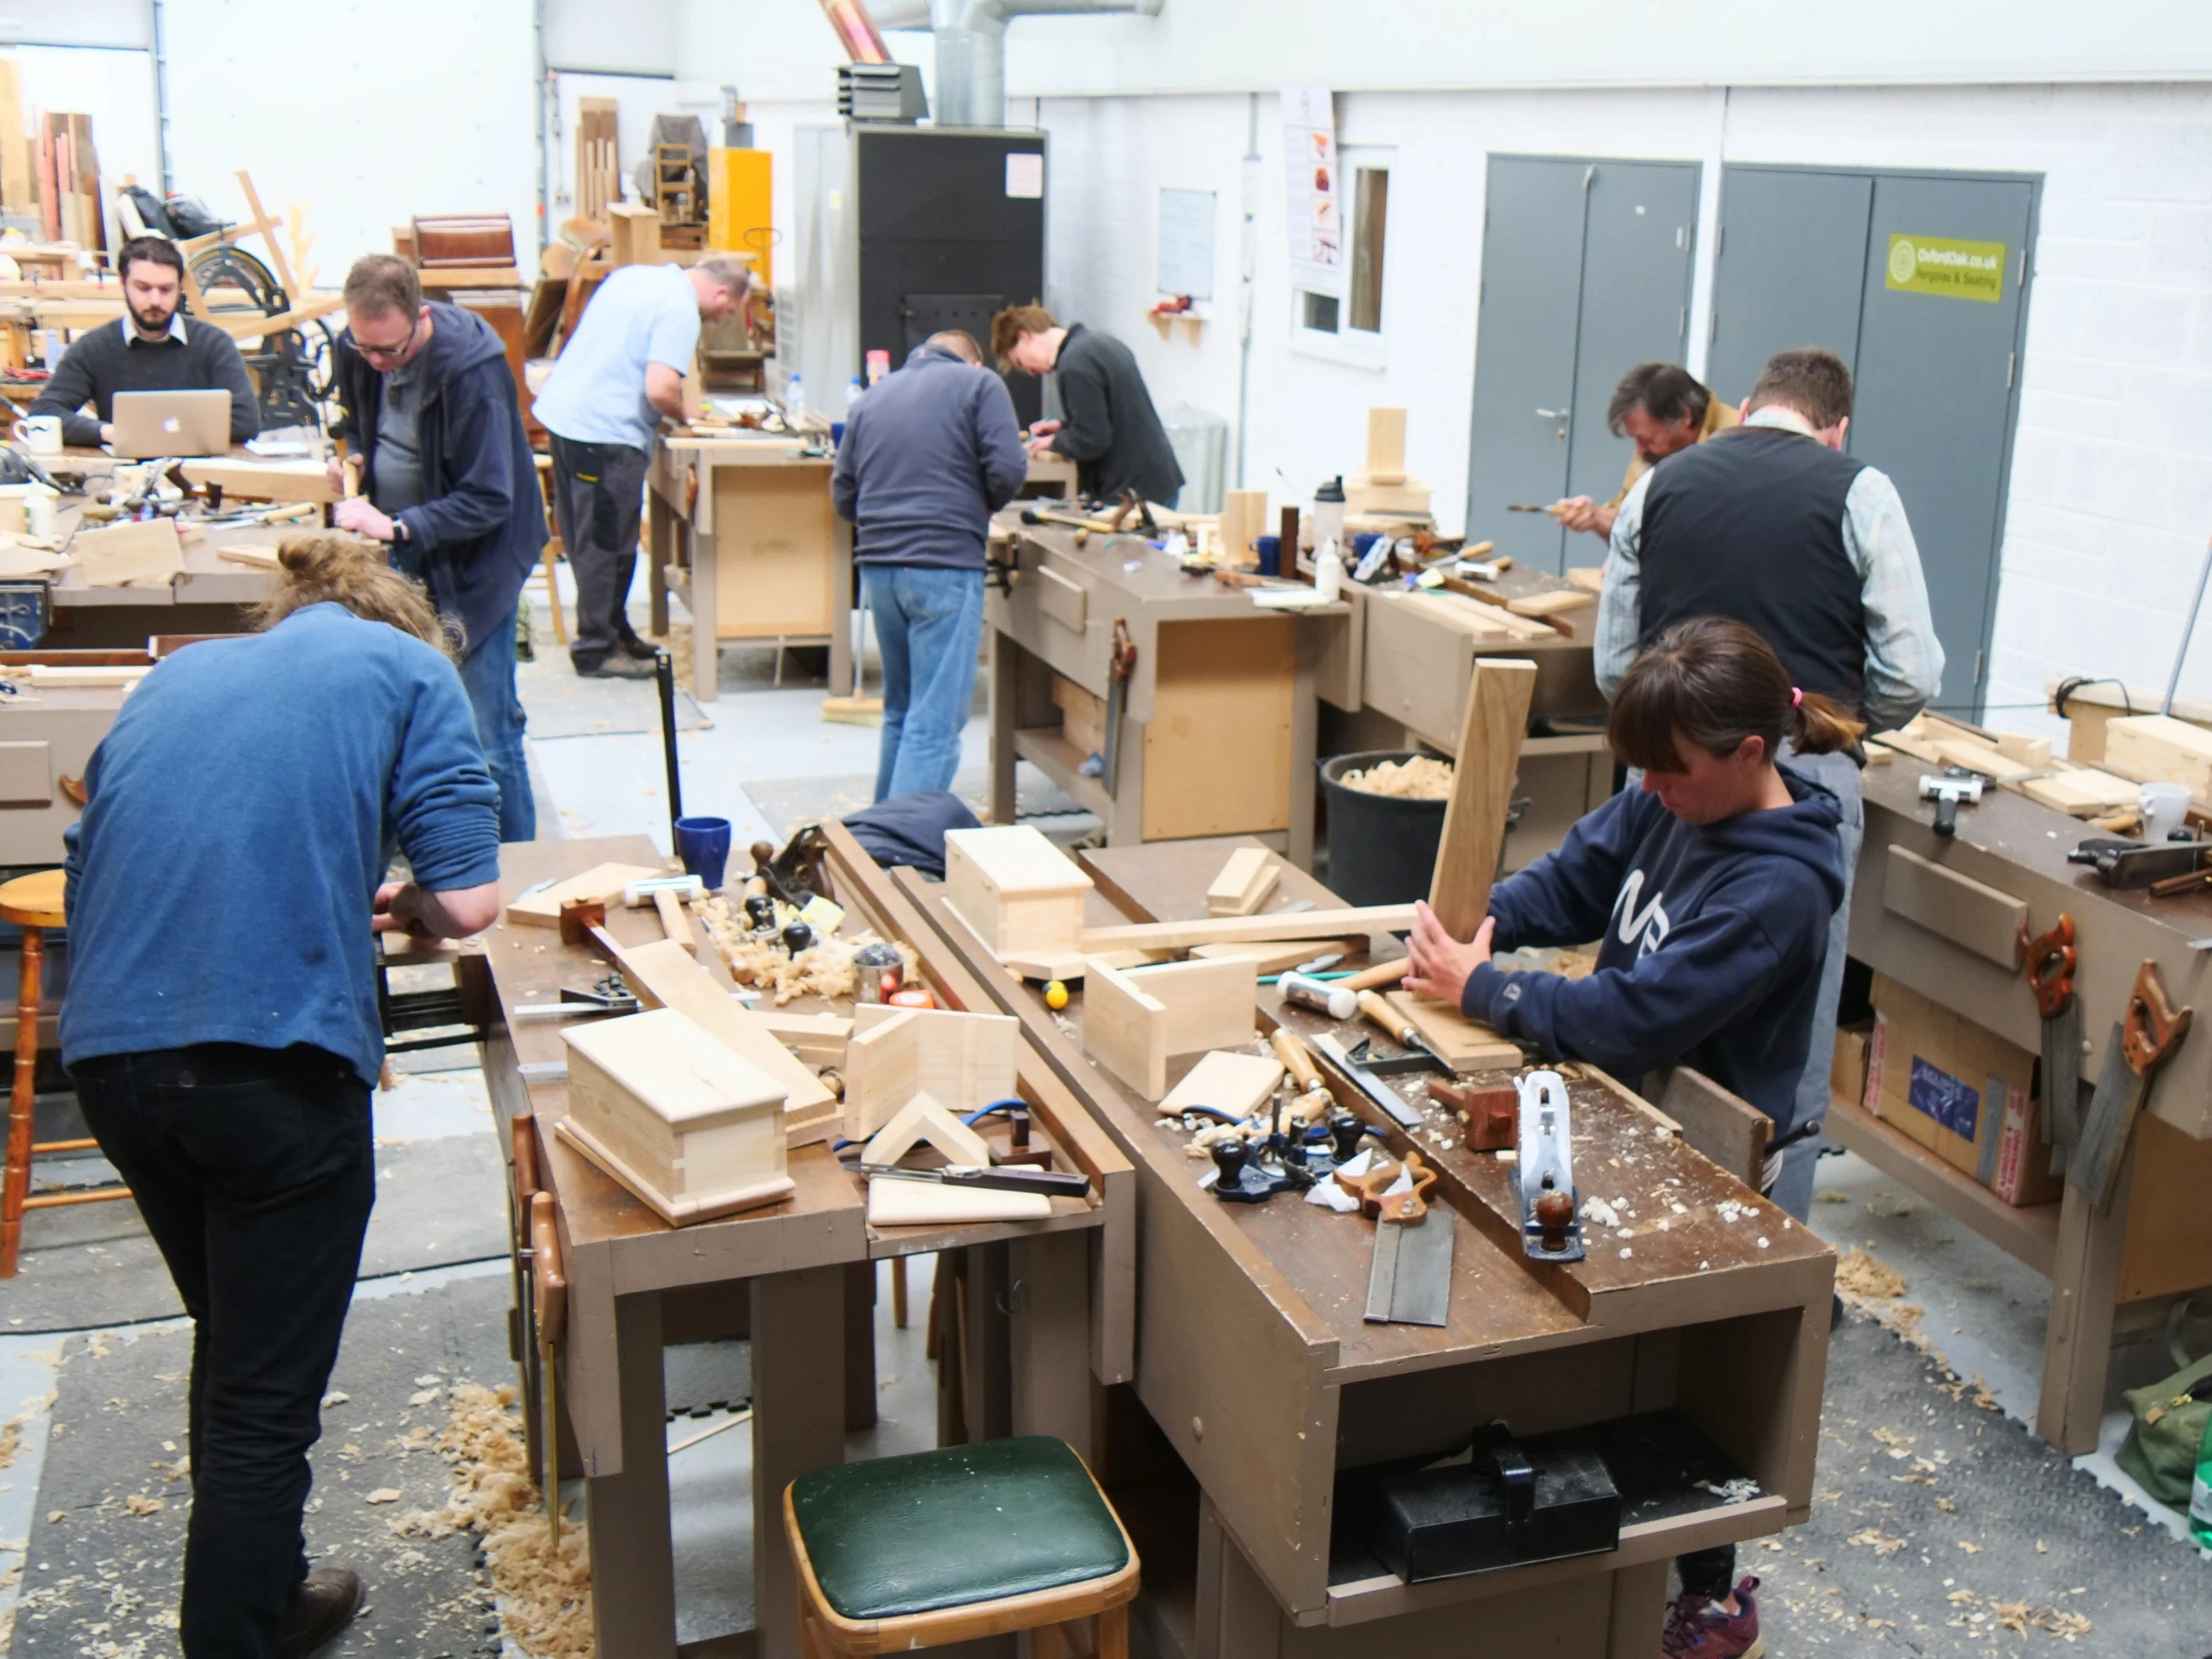 Interspersed Throughout This Course Are Lectures And Demonstrations Around  The Workbench. Here, Paul Seeks To Ensure That Each Students Learns What It  Takes ...